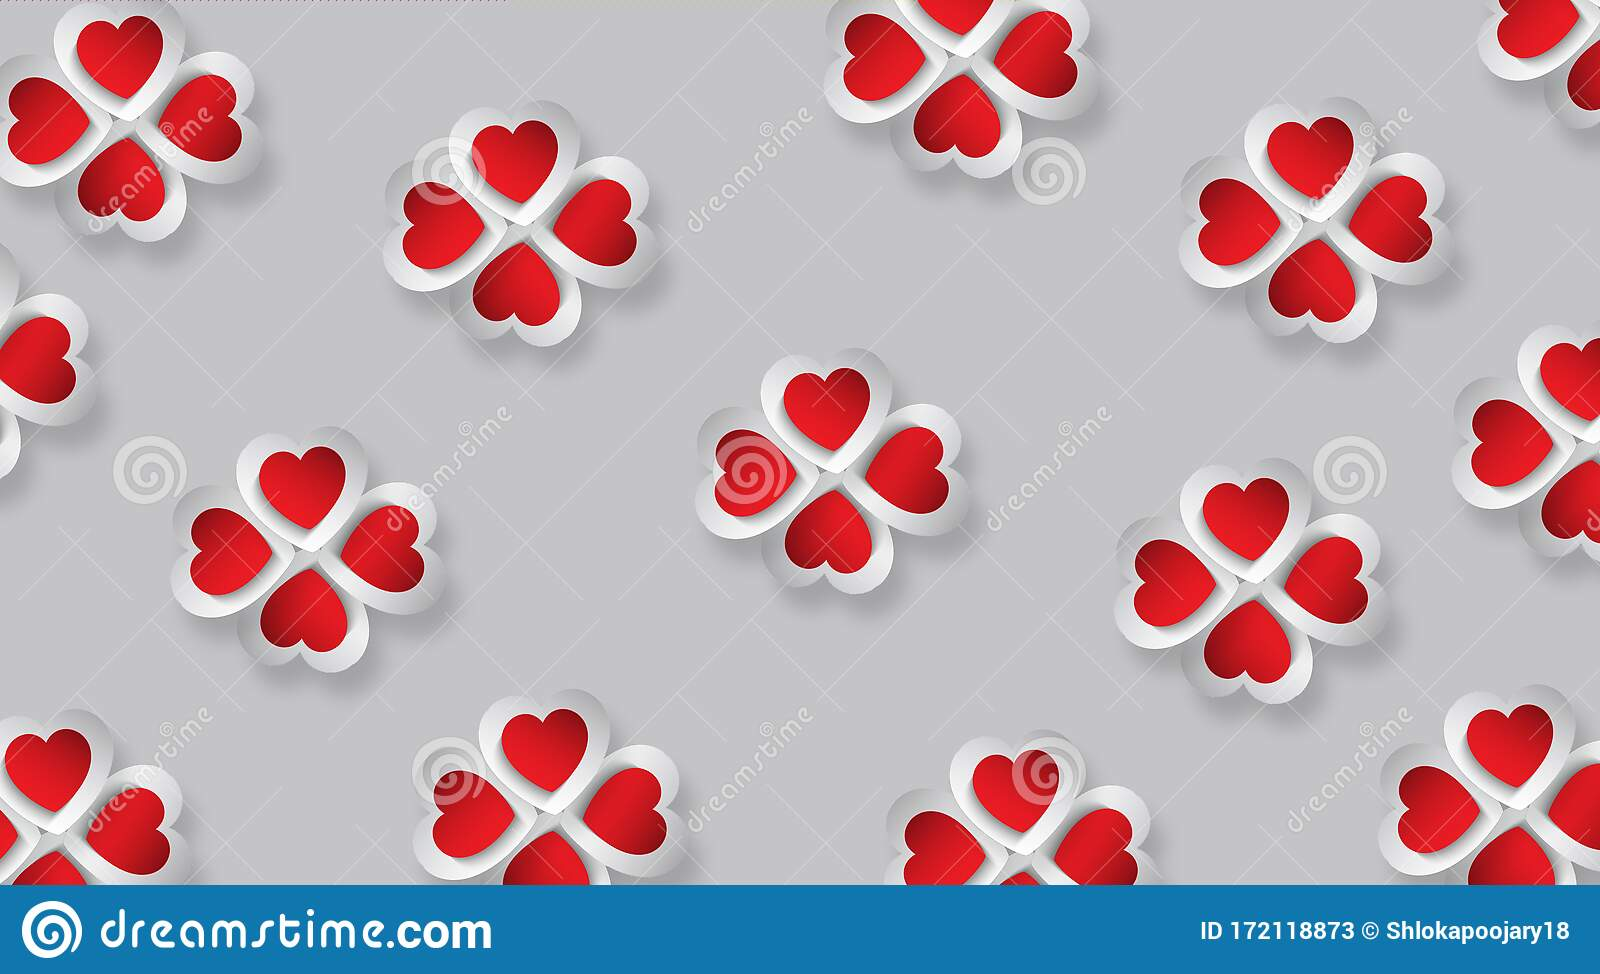 best love wallpaper red white d hearts placed flower form grey background cute useful web designers 172118873